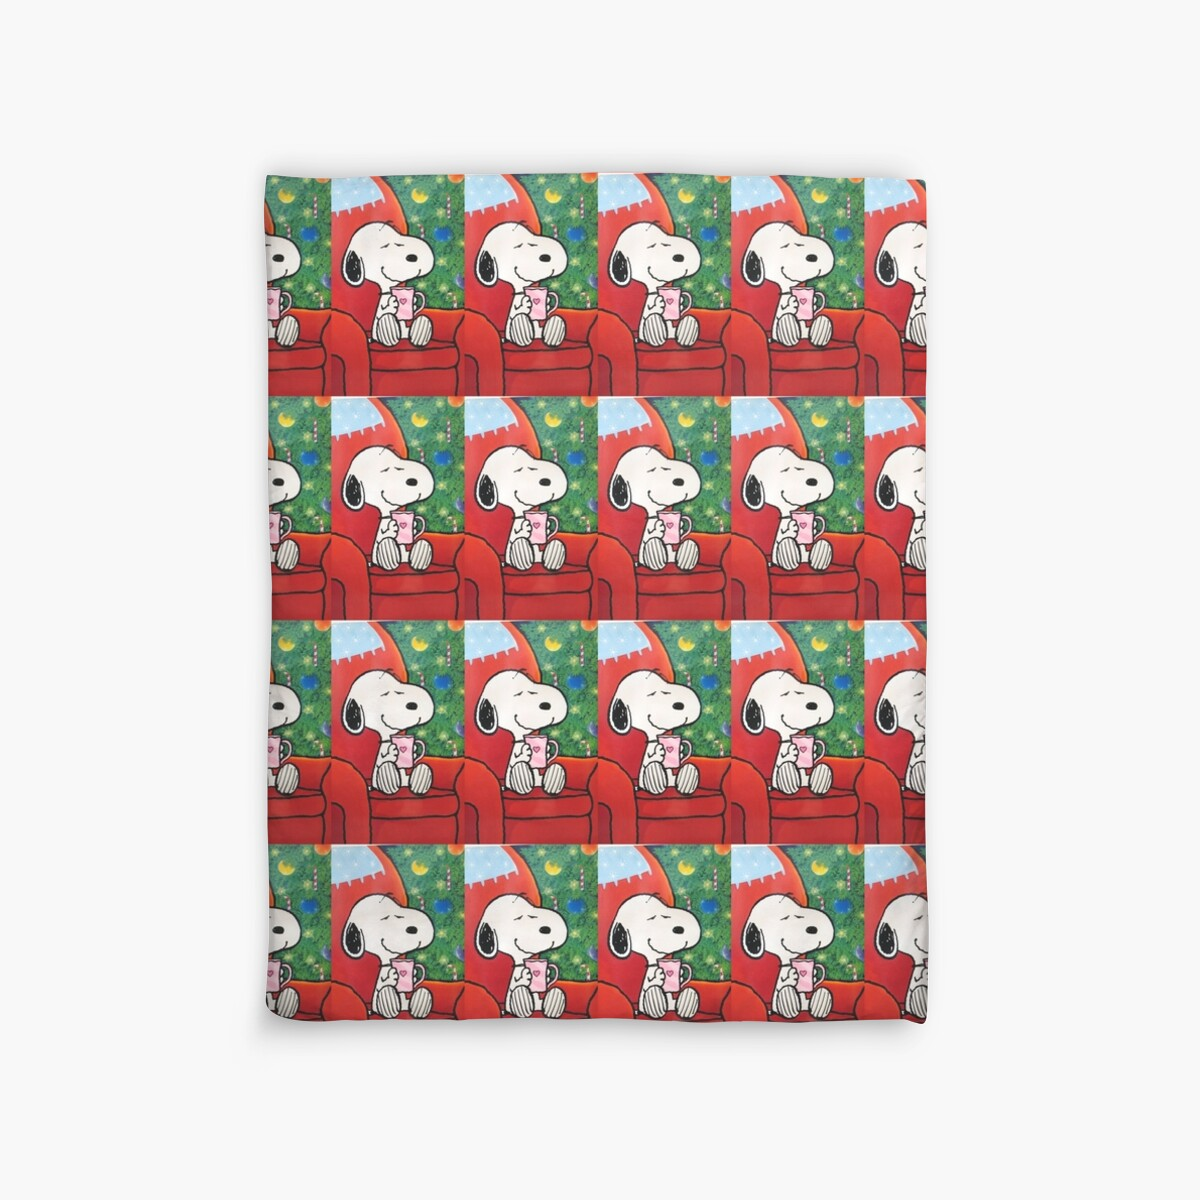 Quot Snoopy Happy Christmas Quot Duvet Covers By Ringskulls